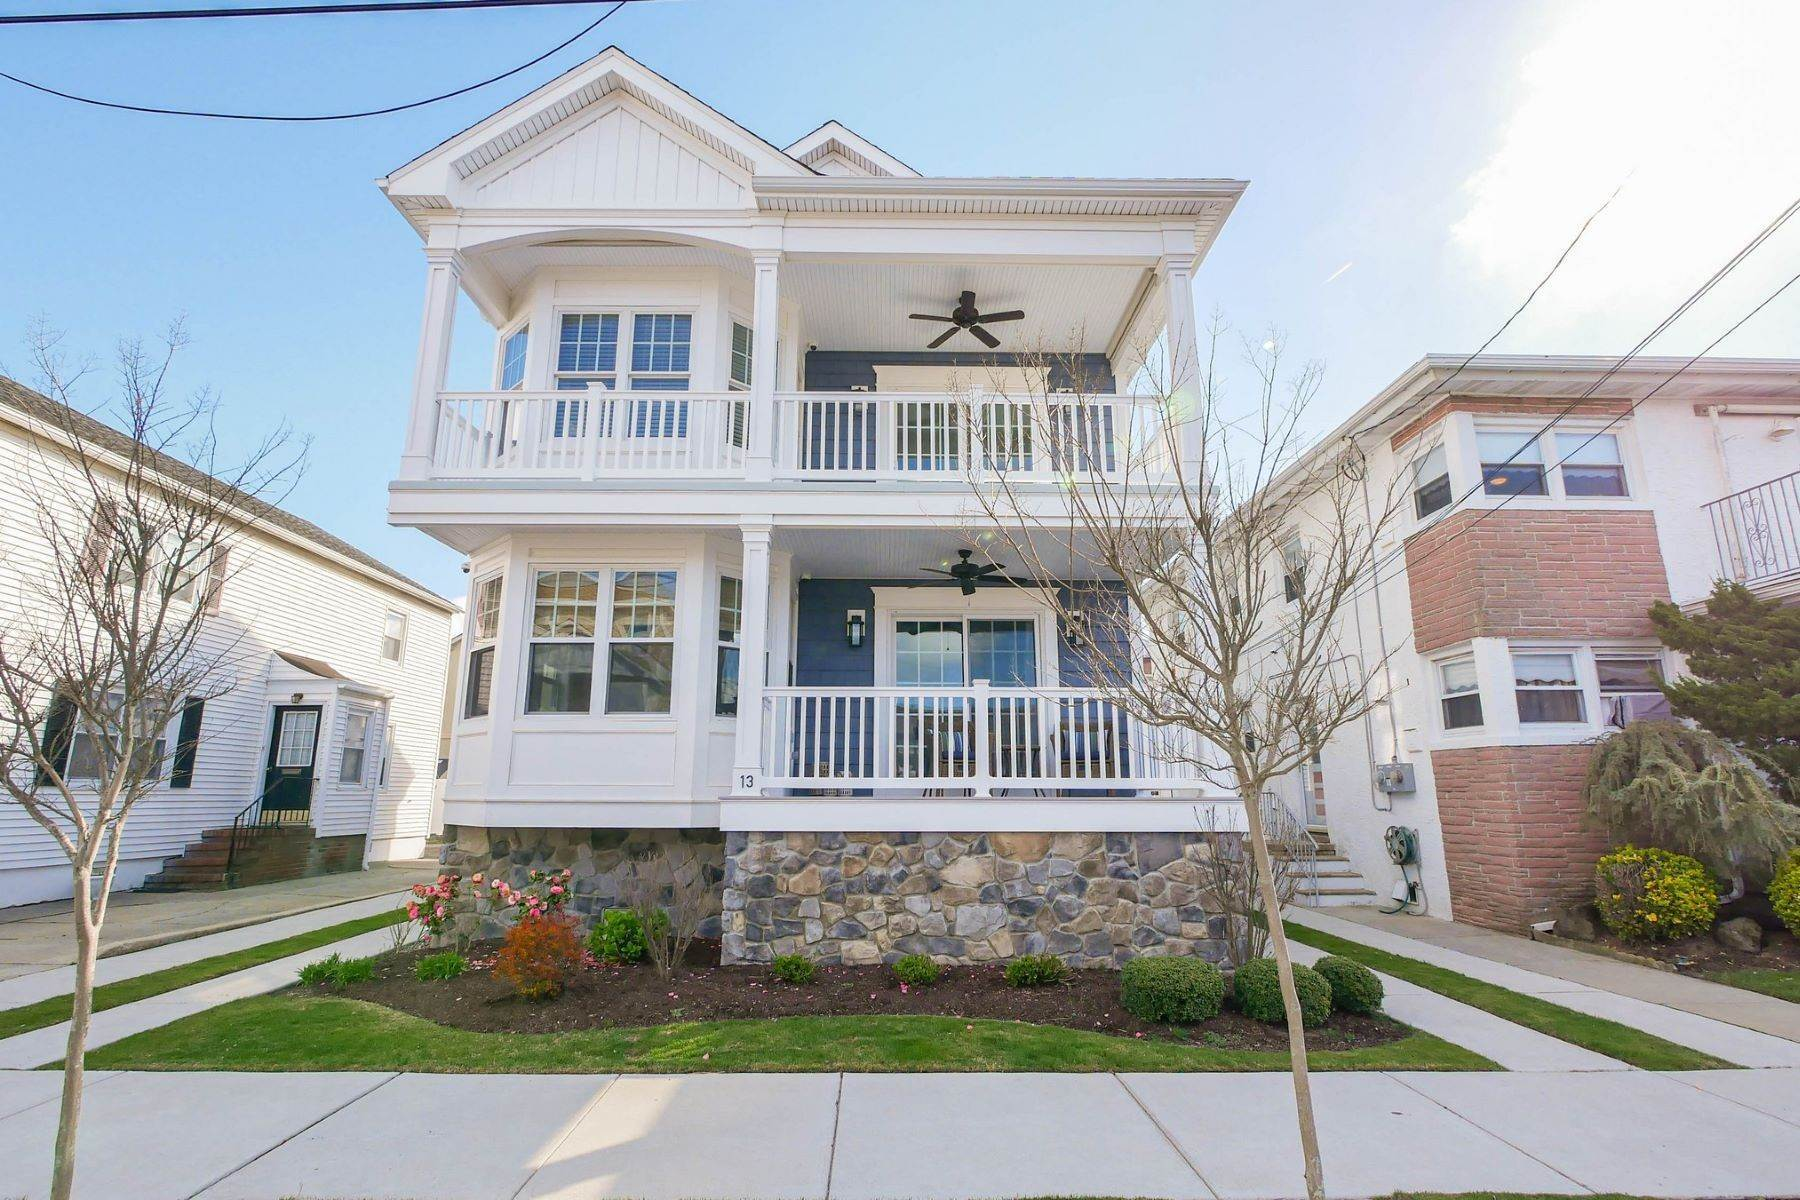 Condominiums for Sale at 13 S Gladstone Avenue Margate, New Jersey 08402 United States